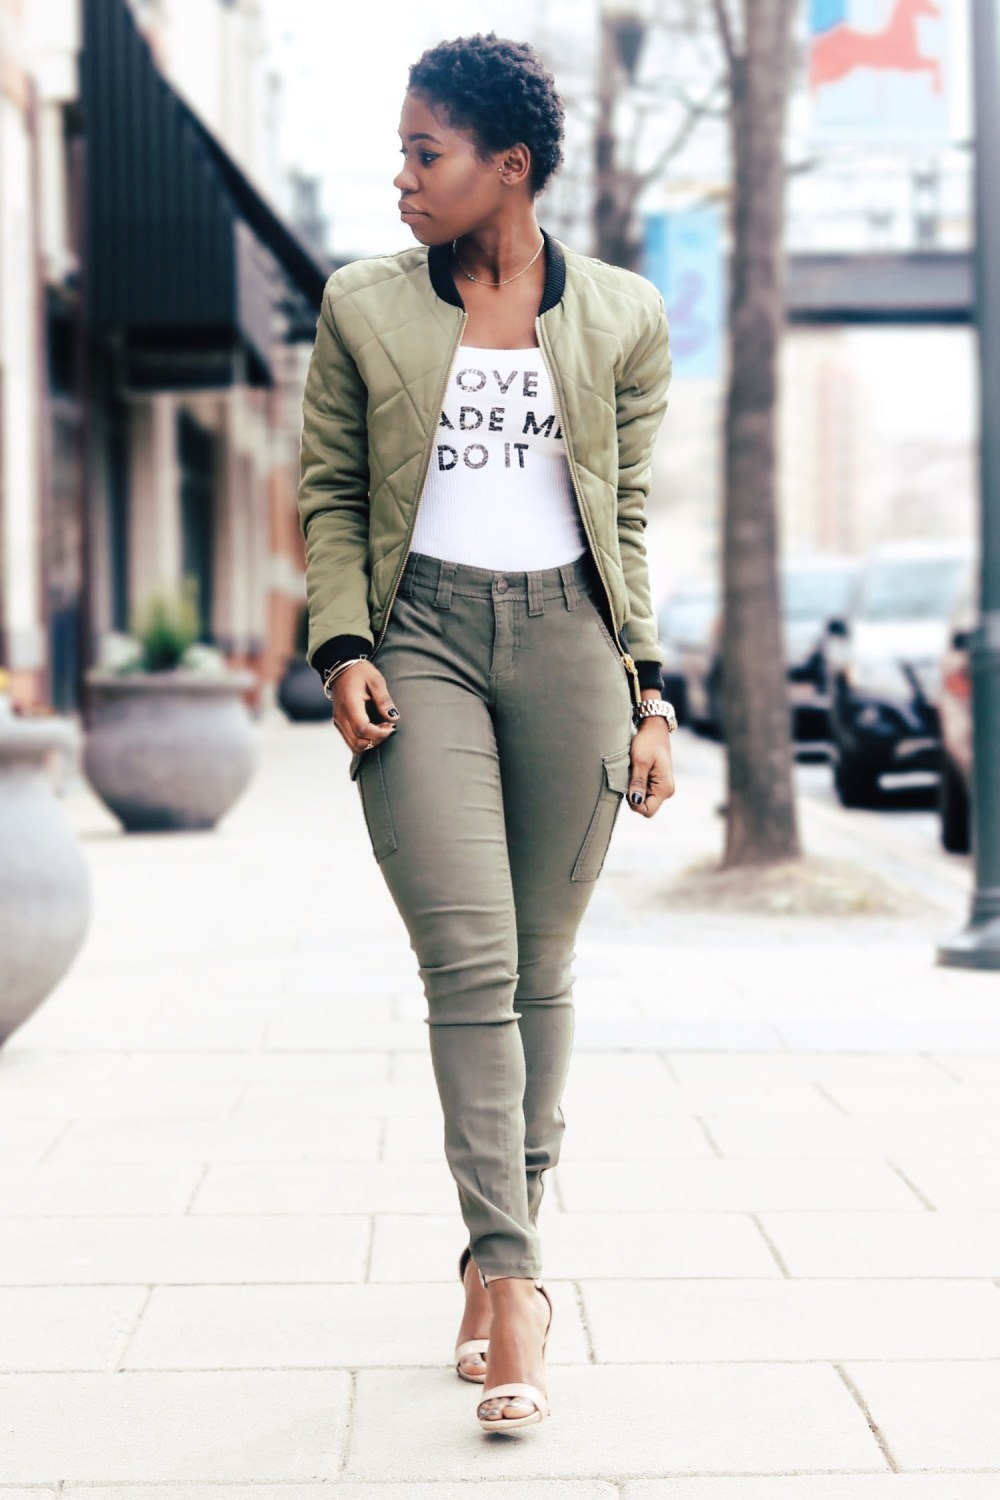 style-synopsis-casual-athlesiure-style